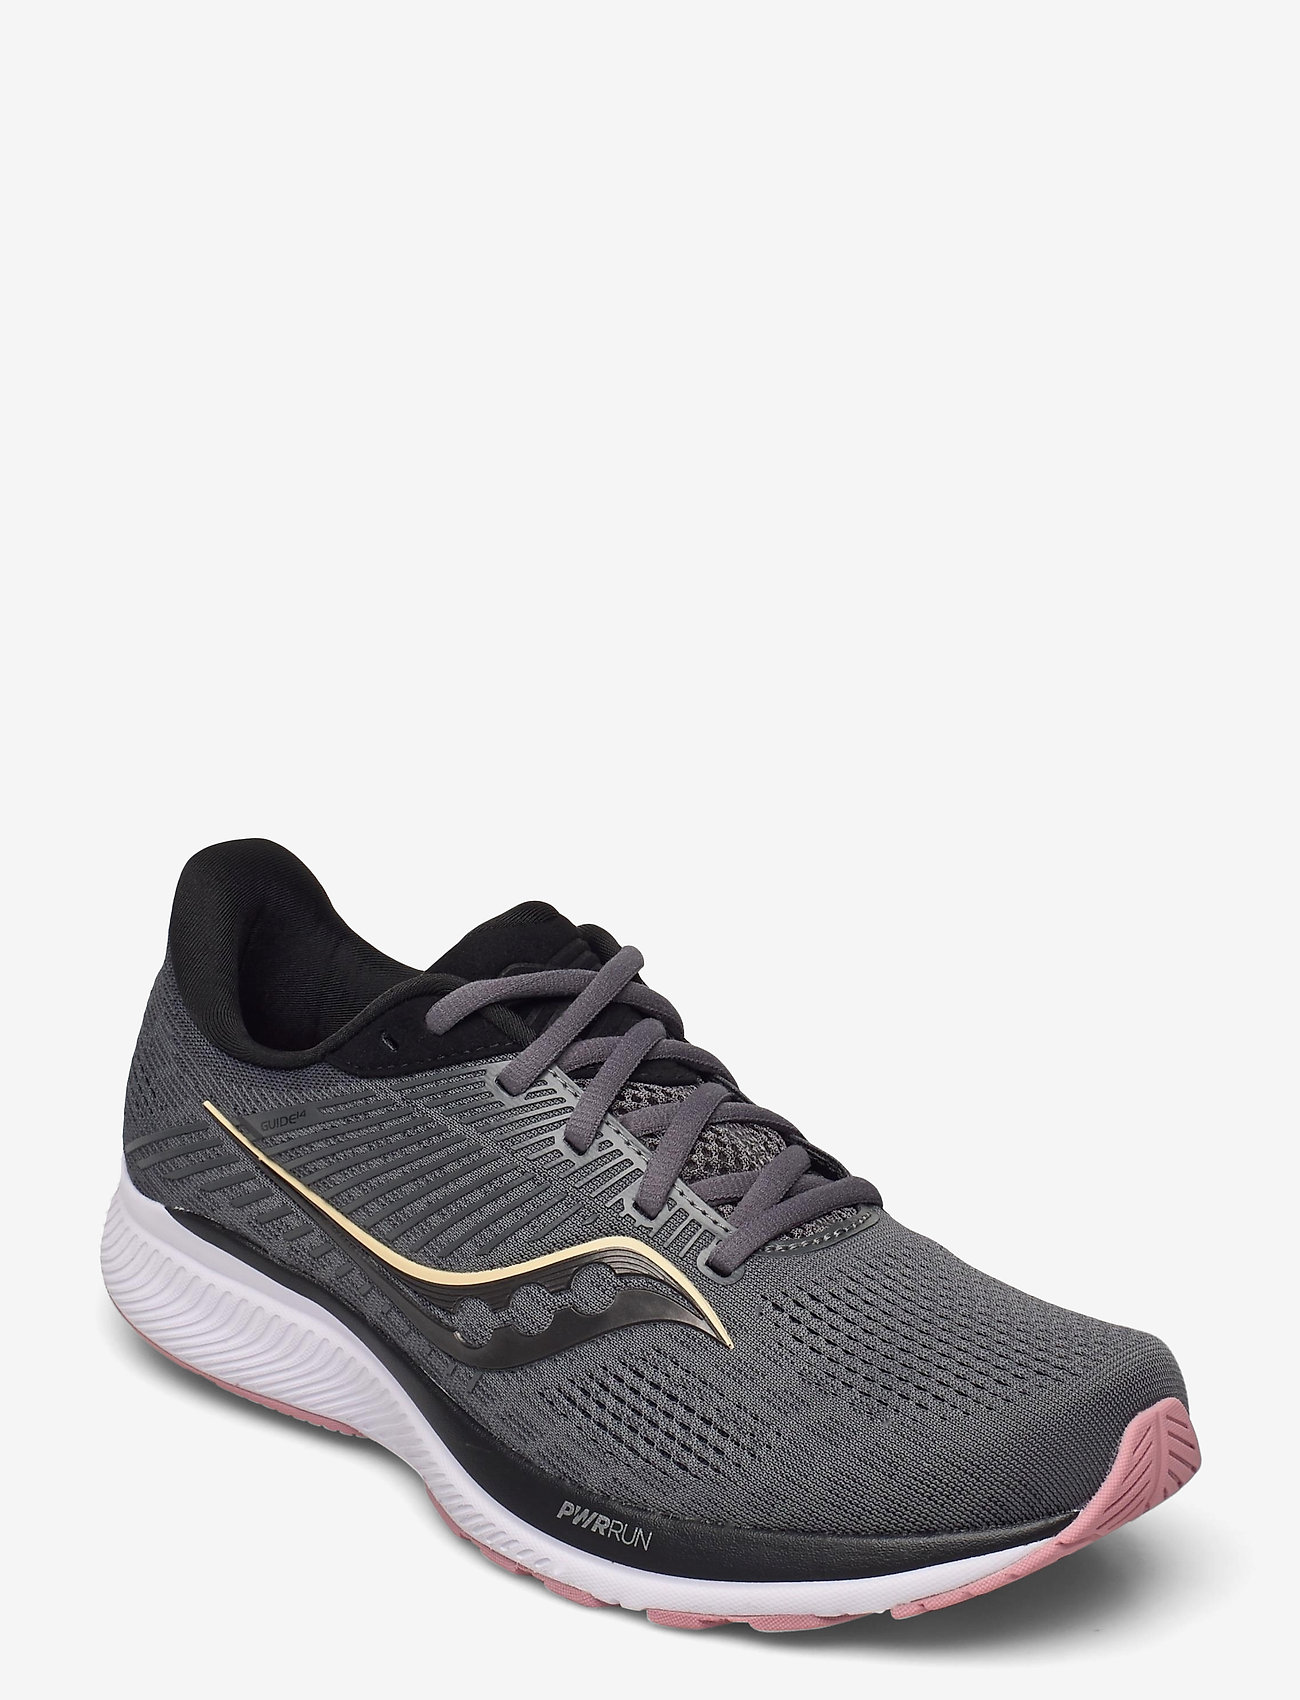 Saucony - GUIDE 14 - running shoes - charcoal/rose - 0